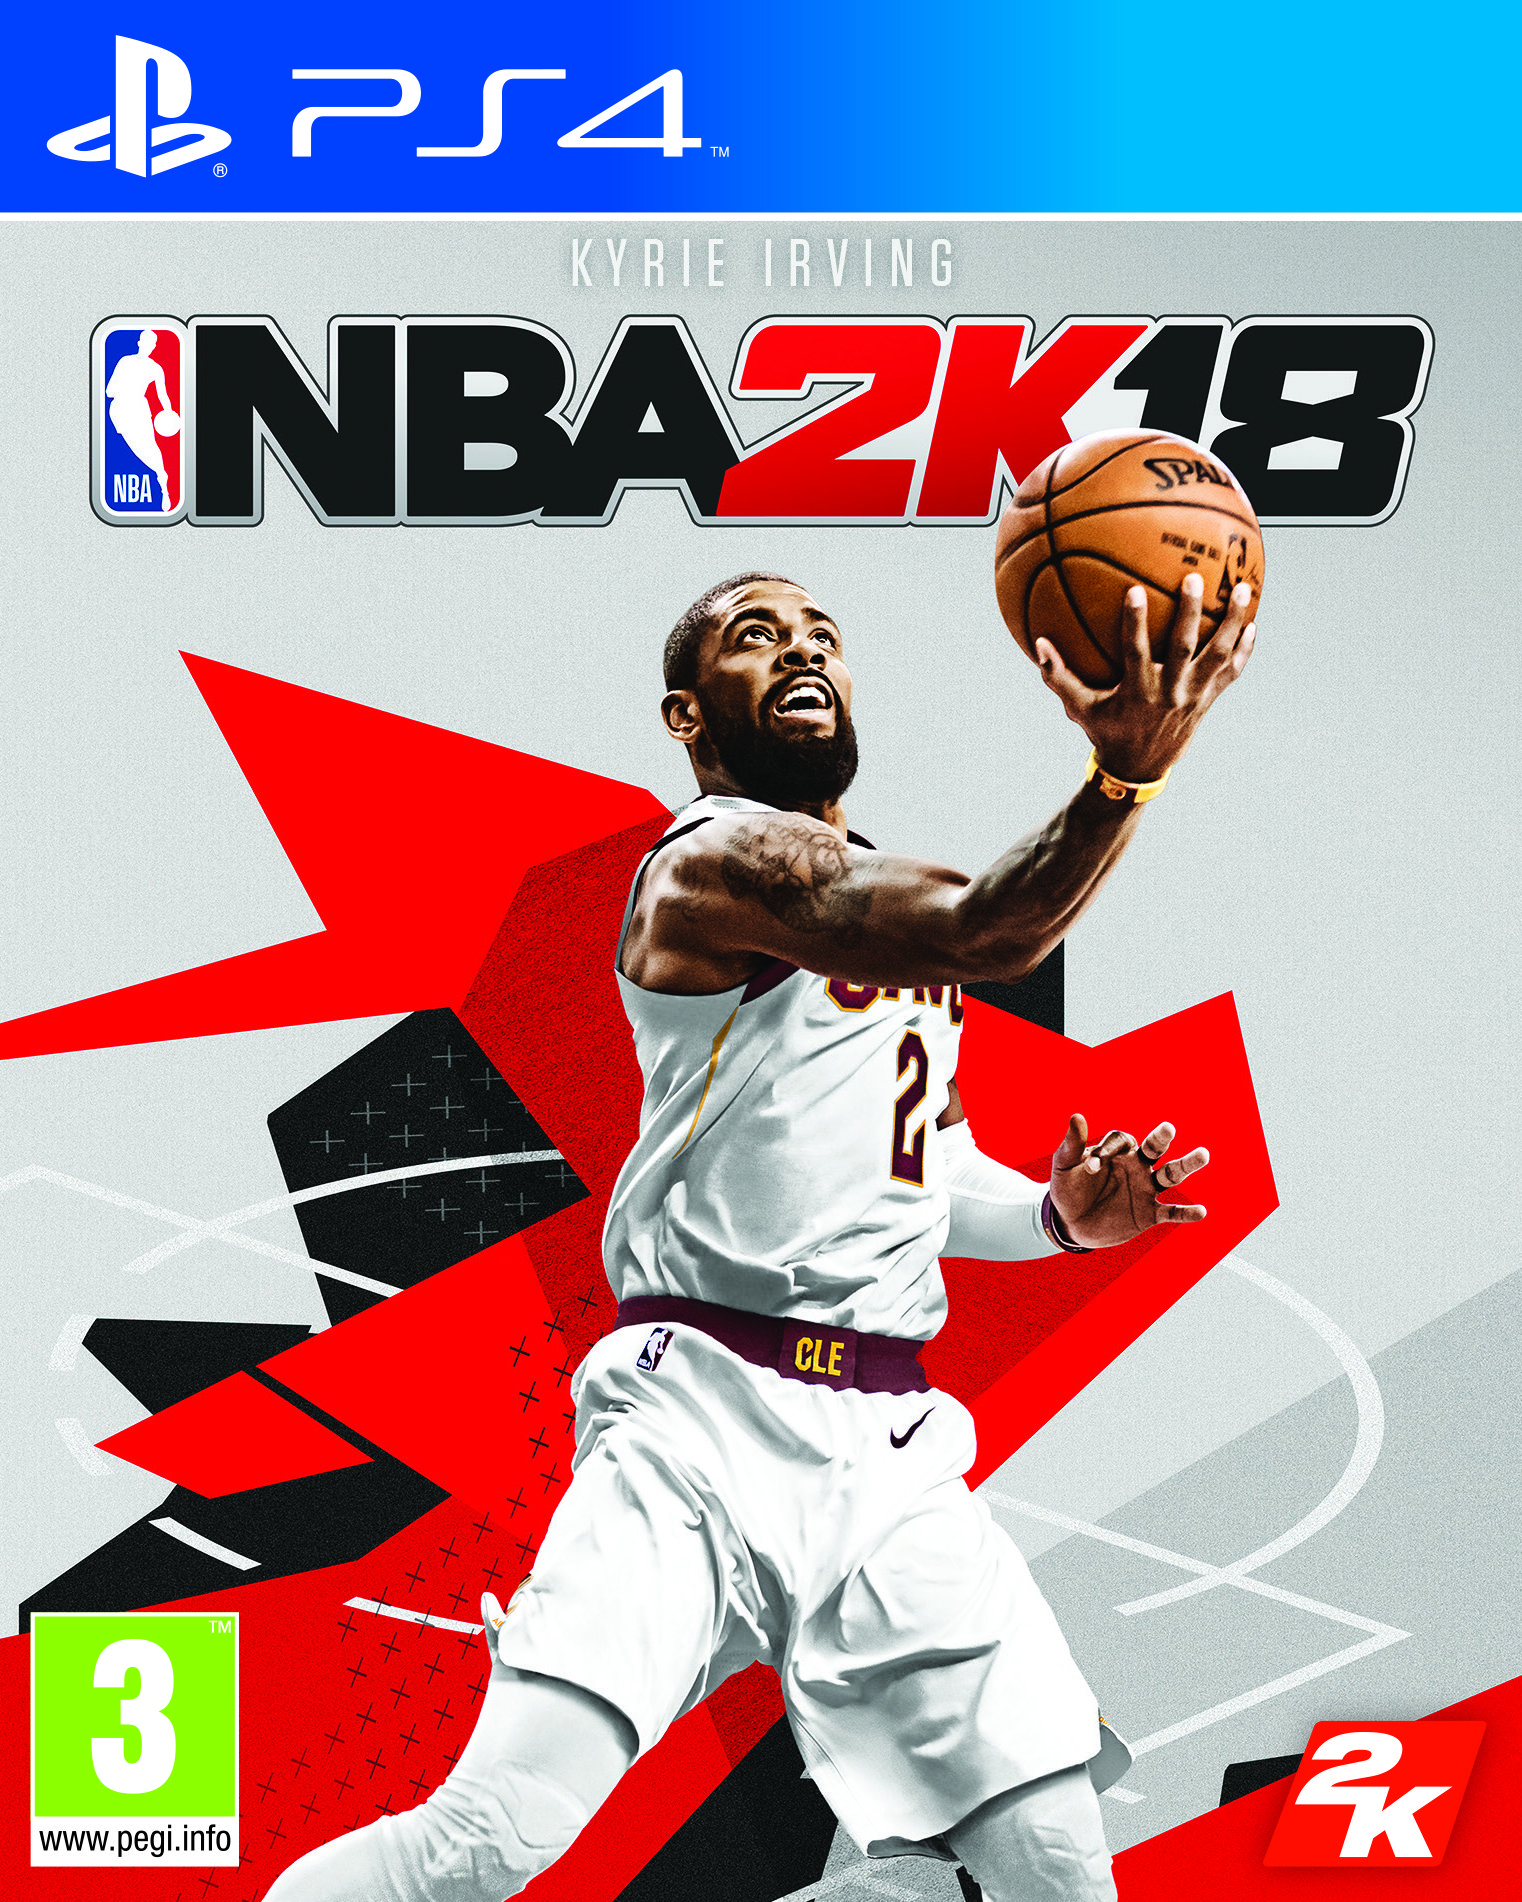 WWE & NBA2K video game giveaway for PS4